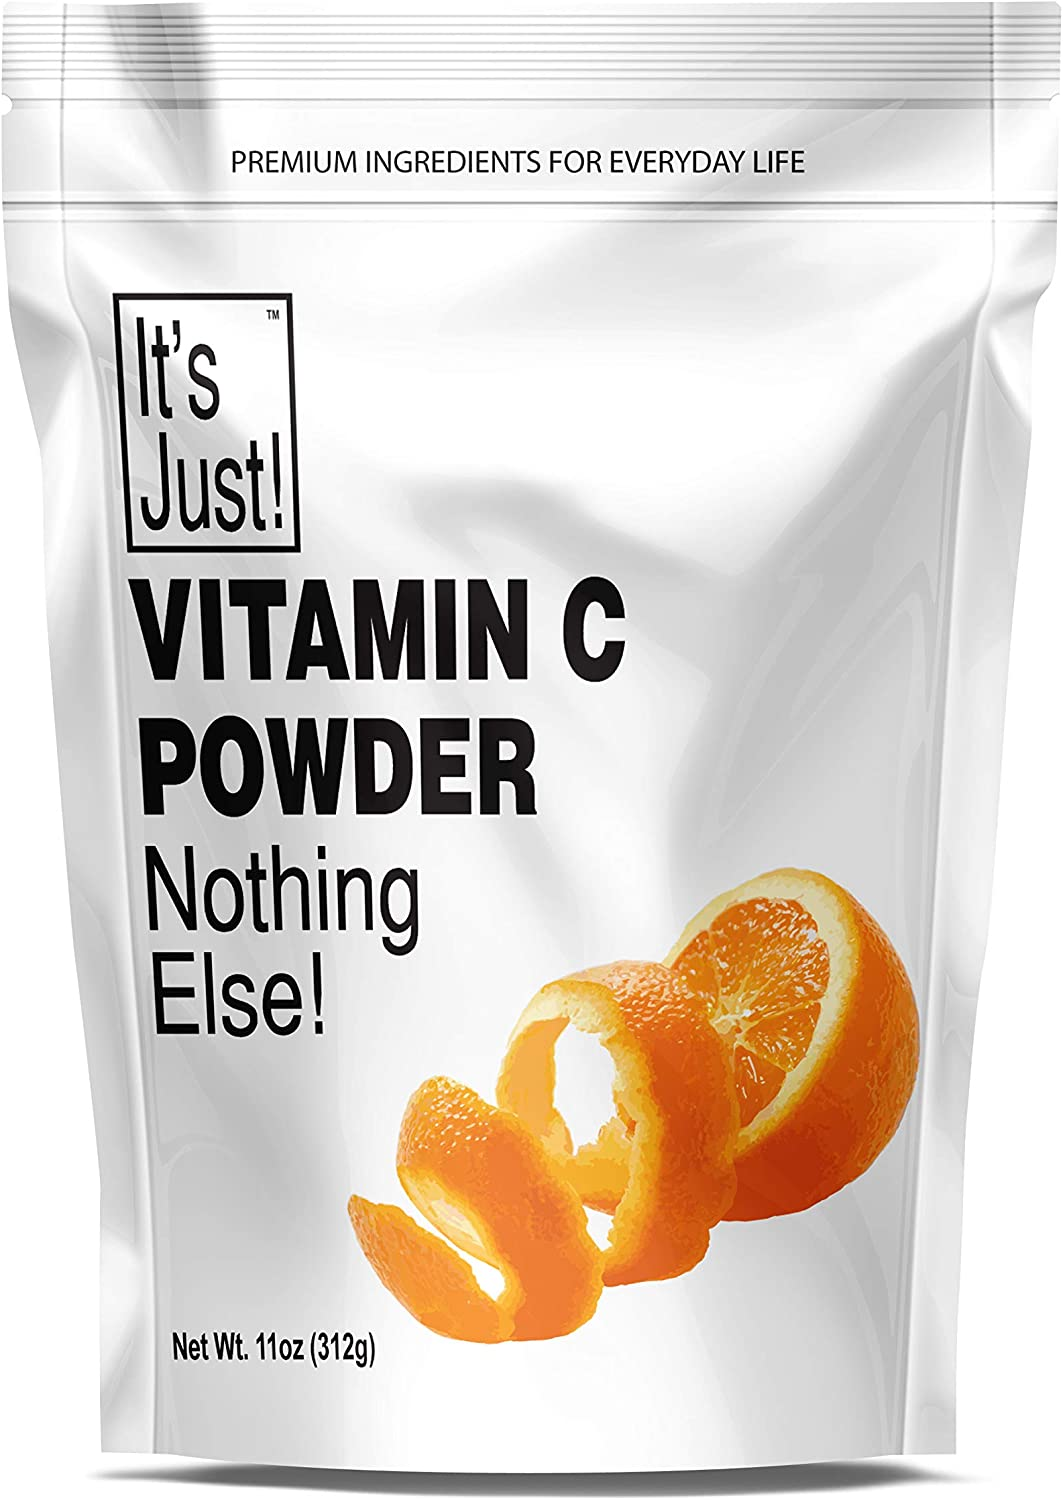 It's Just - Vitamin C (Pure Ascorbic Acid) Powder, Nothing Else, 11oz